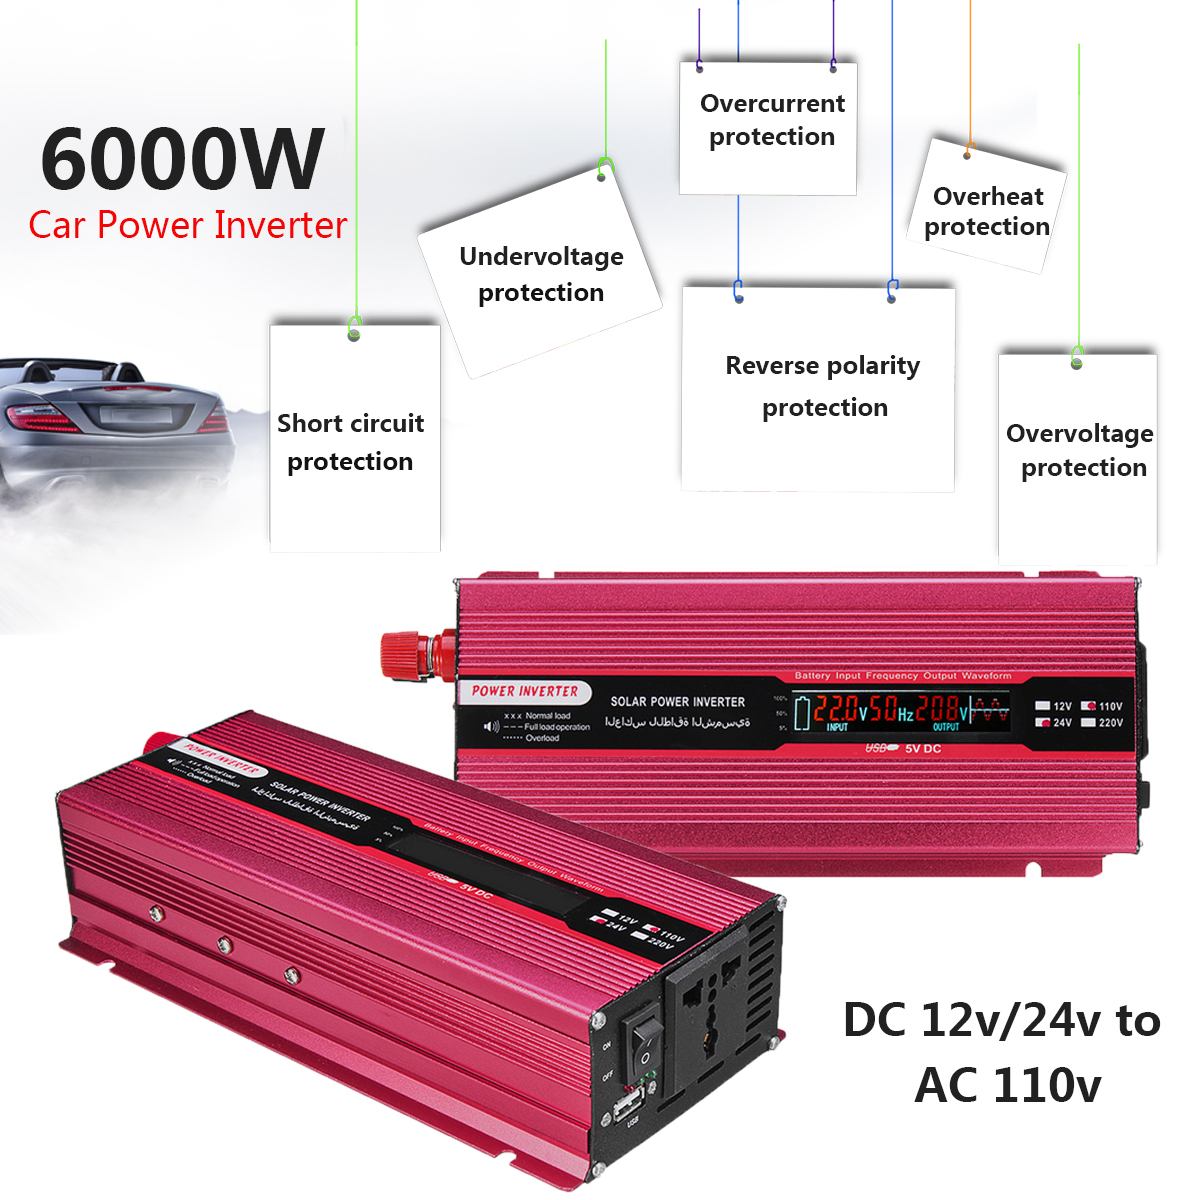 Car Solar Power Inverter USB Modified PEAK 6000W 12/24V To AC 220/110V Sine Wave Voltage Transformer Aluminum Alloy Universal батарейки duracell basic lr6 4bl aa 4 шт